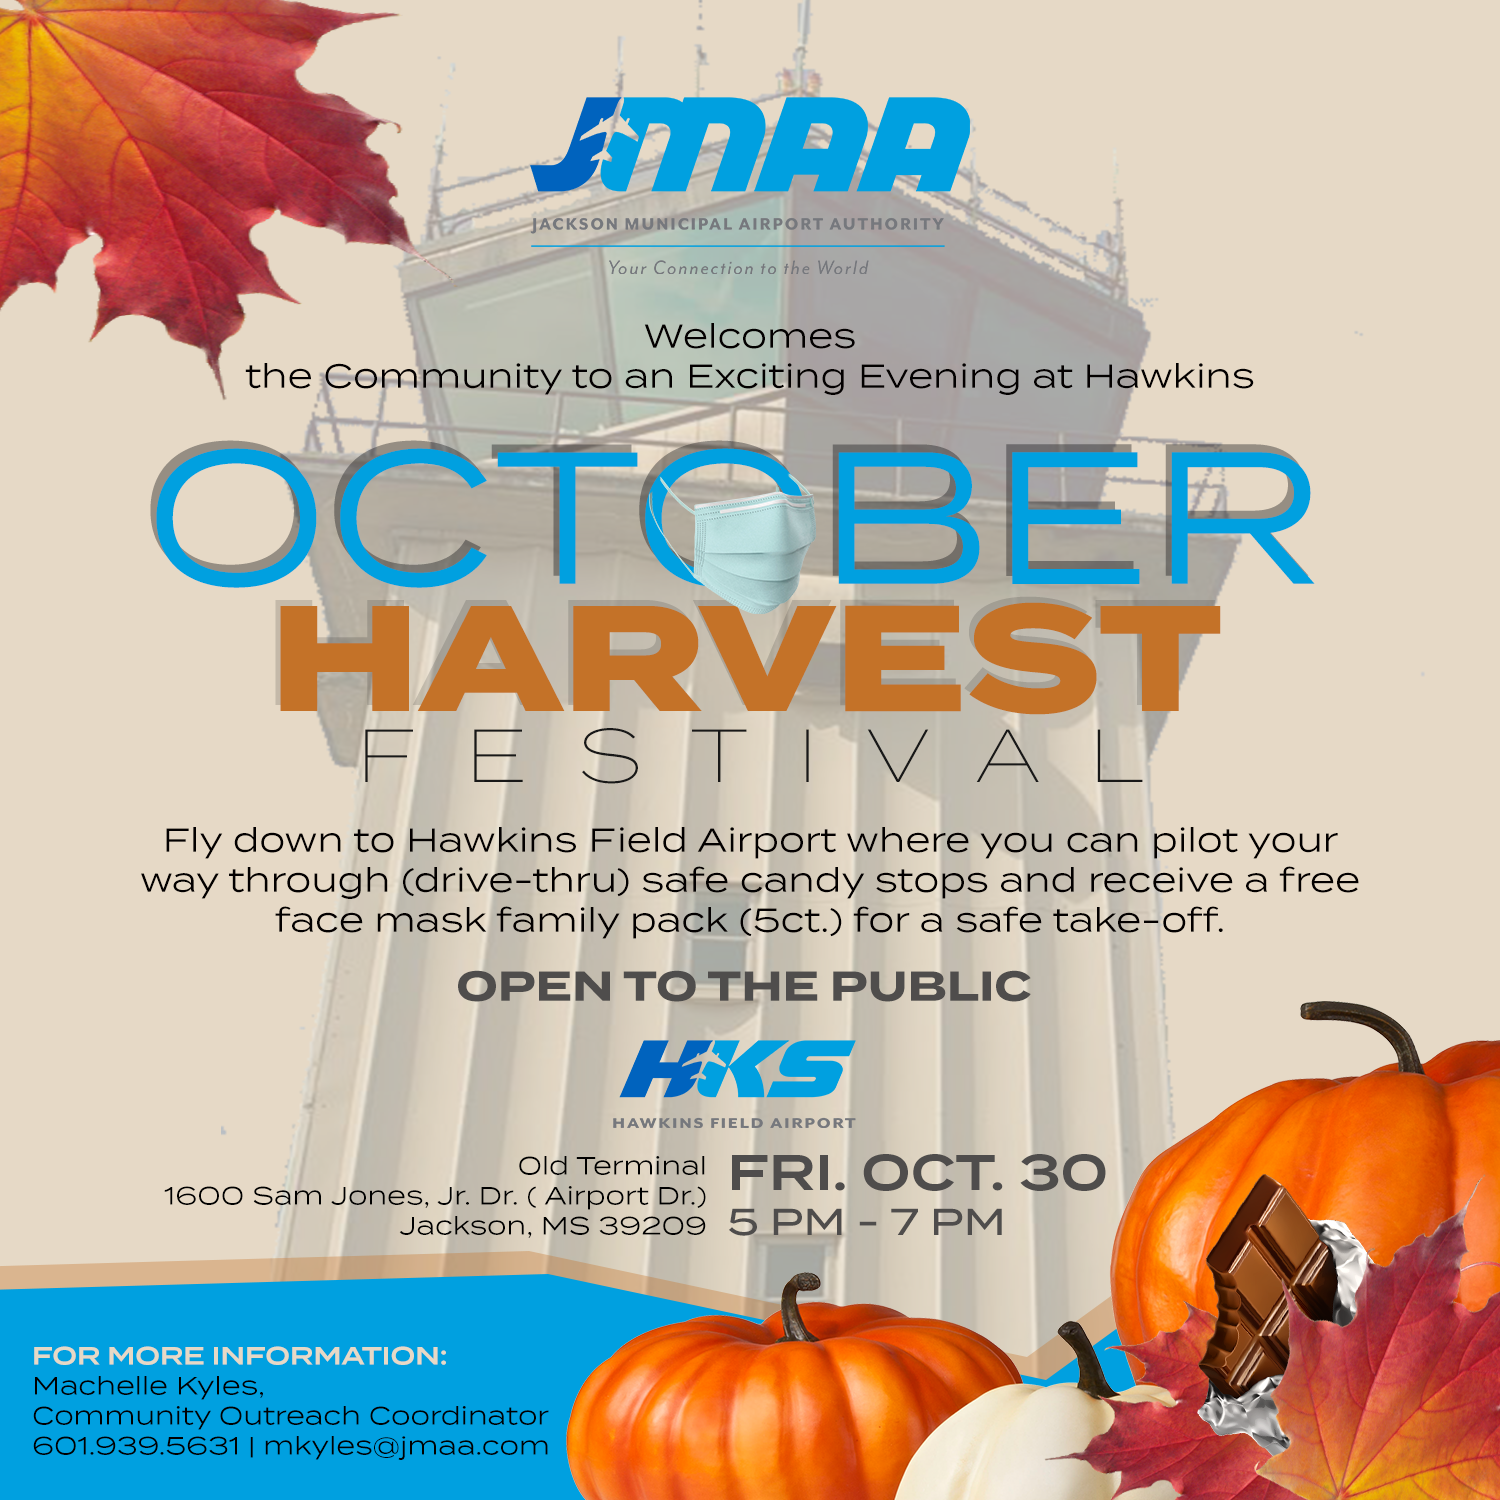 Jackson Municipal Airport Authority Welcomes the Public to the October Harvest Festival at HKS